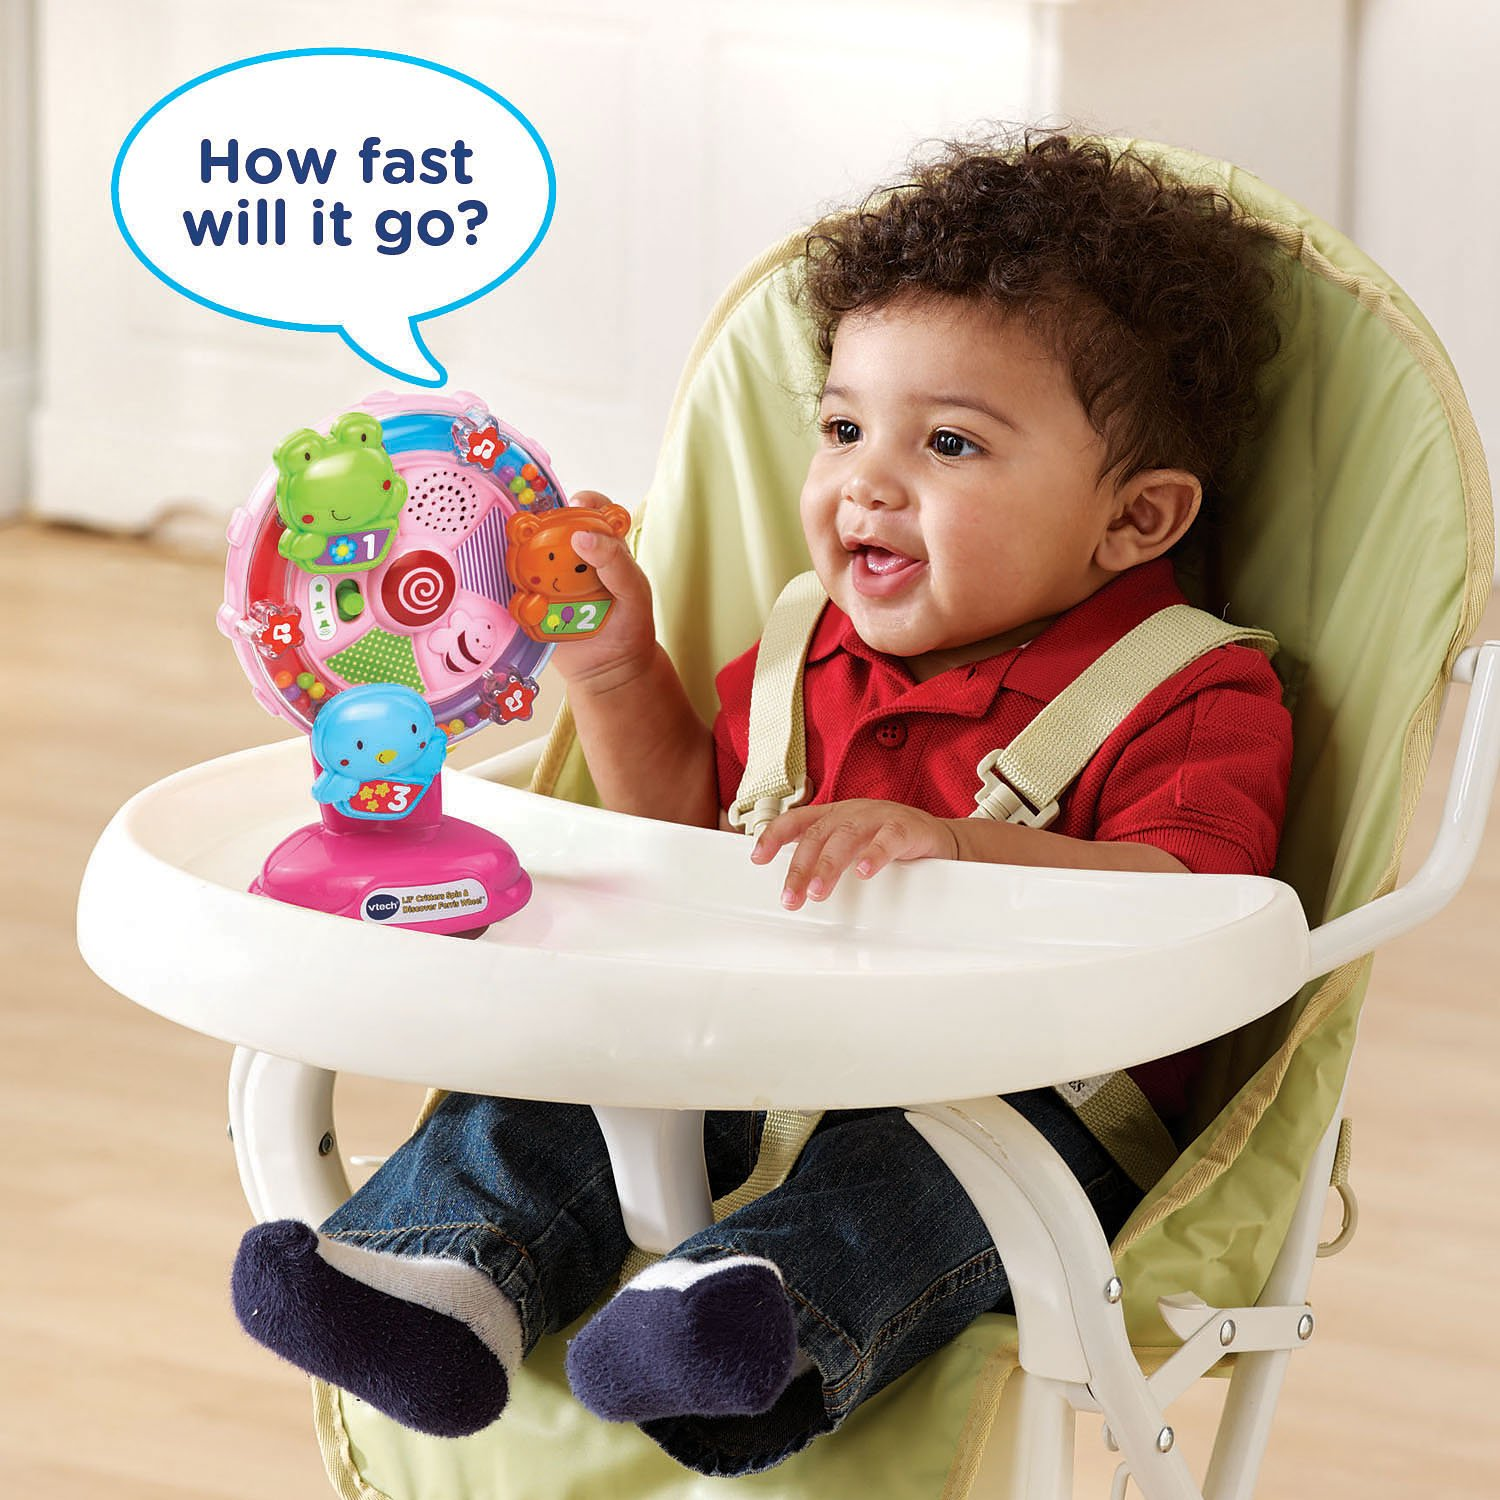 VTech Lil' Critters Spin and Discover Ferris Wheels, Pink (Amazon Exclusive) by VTech (Image #5)